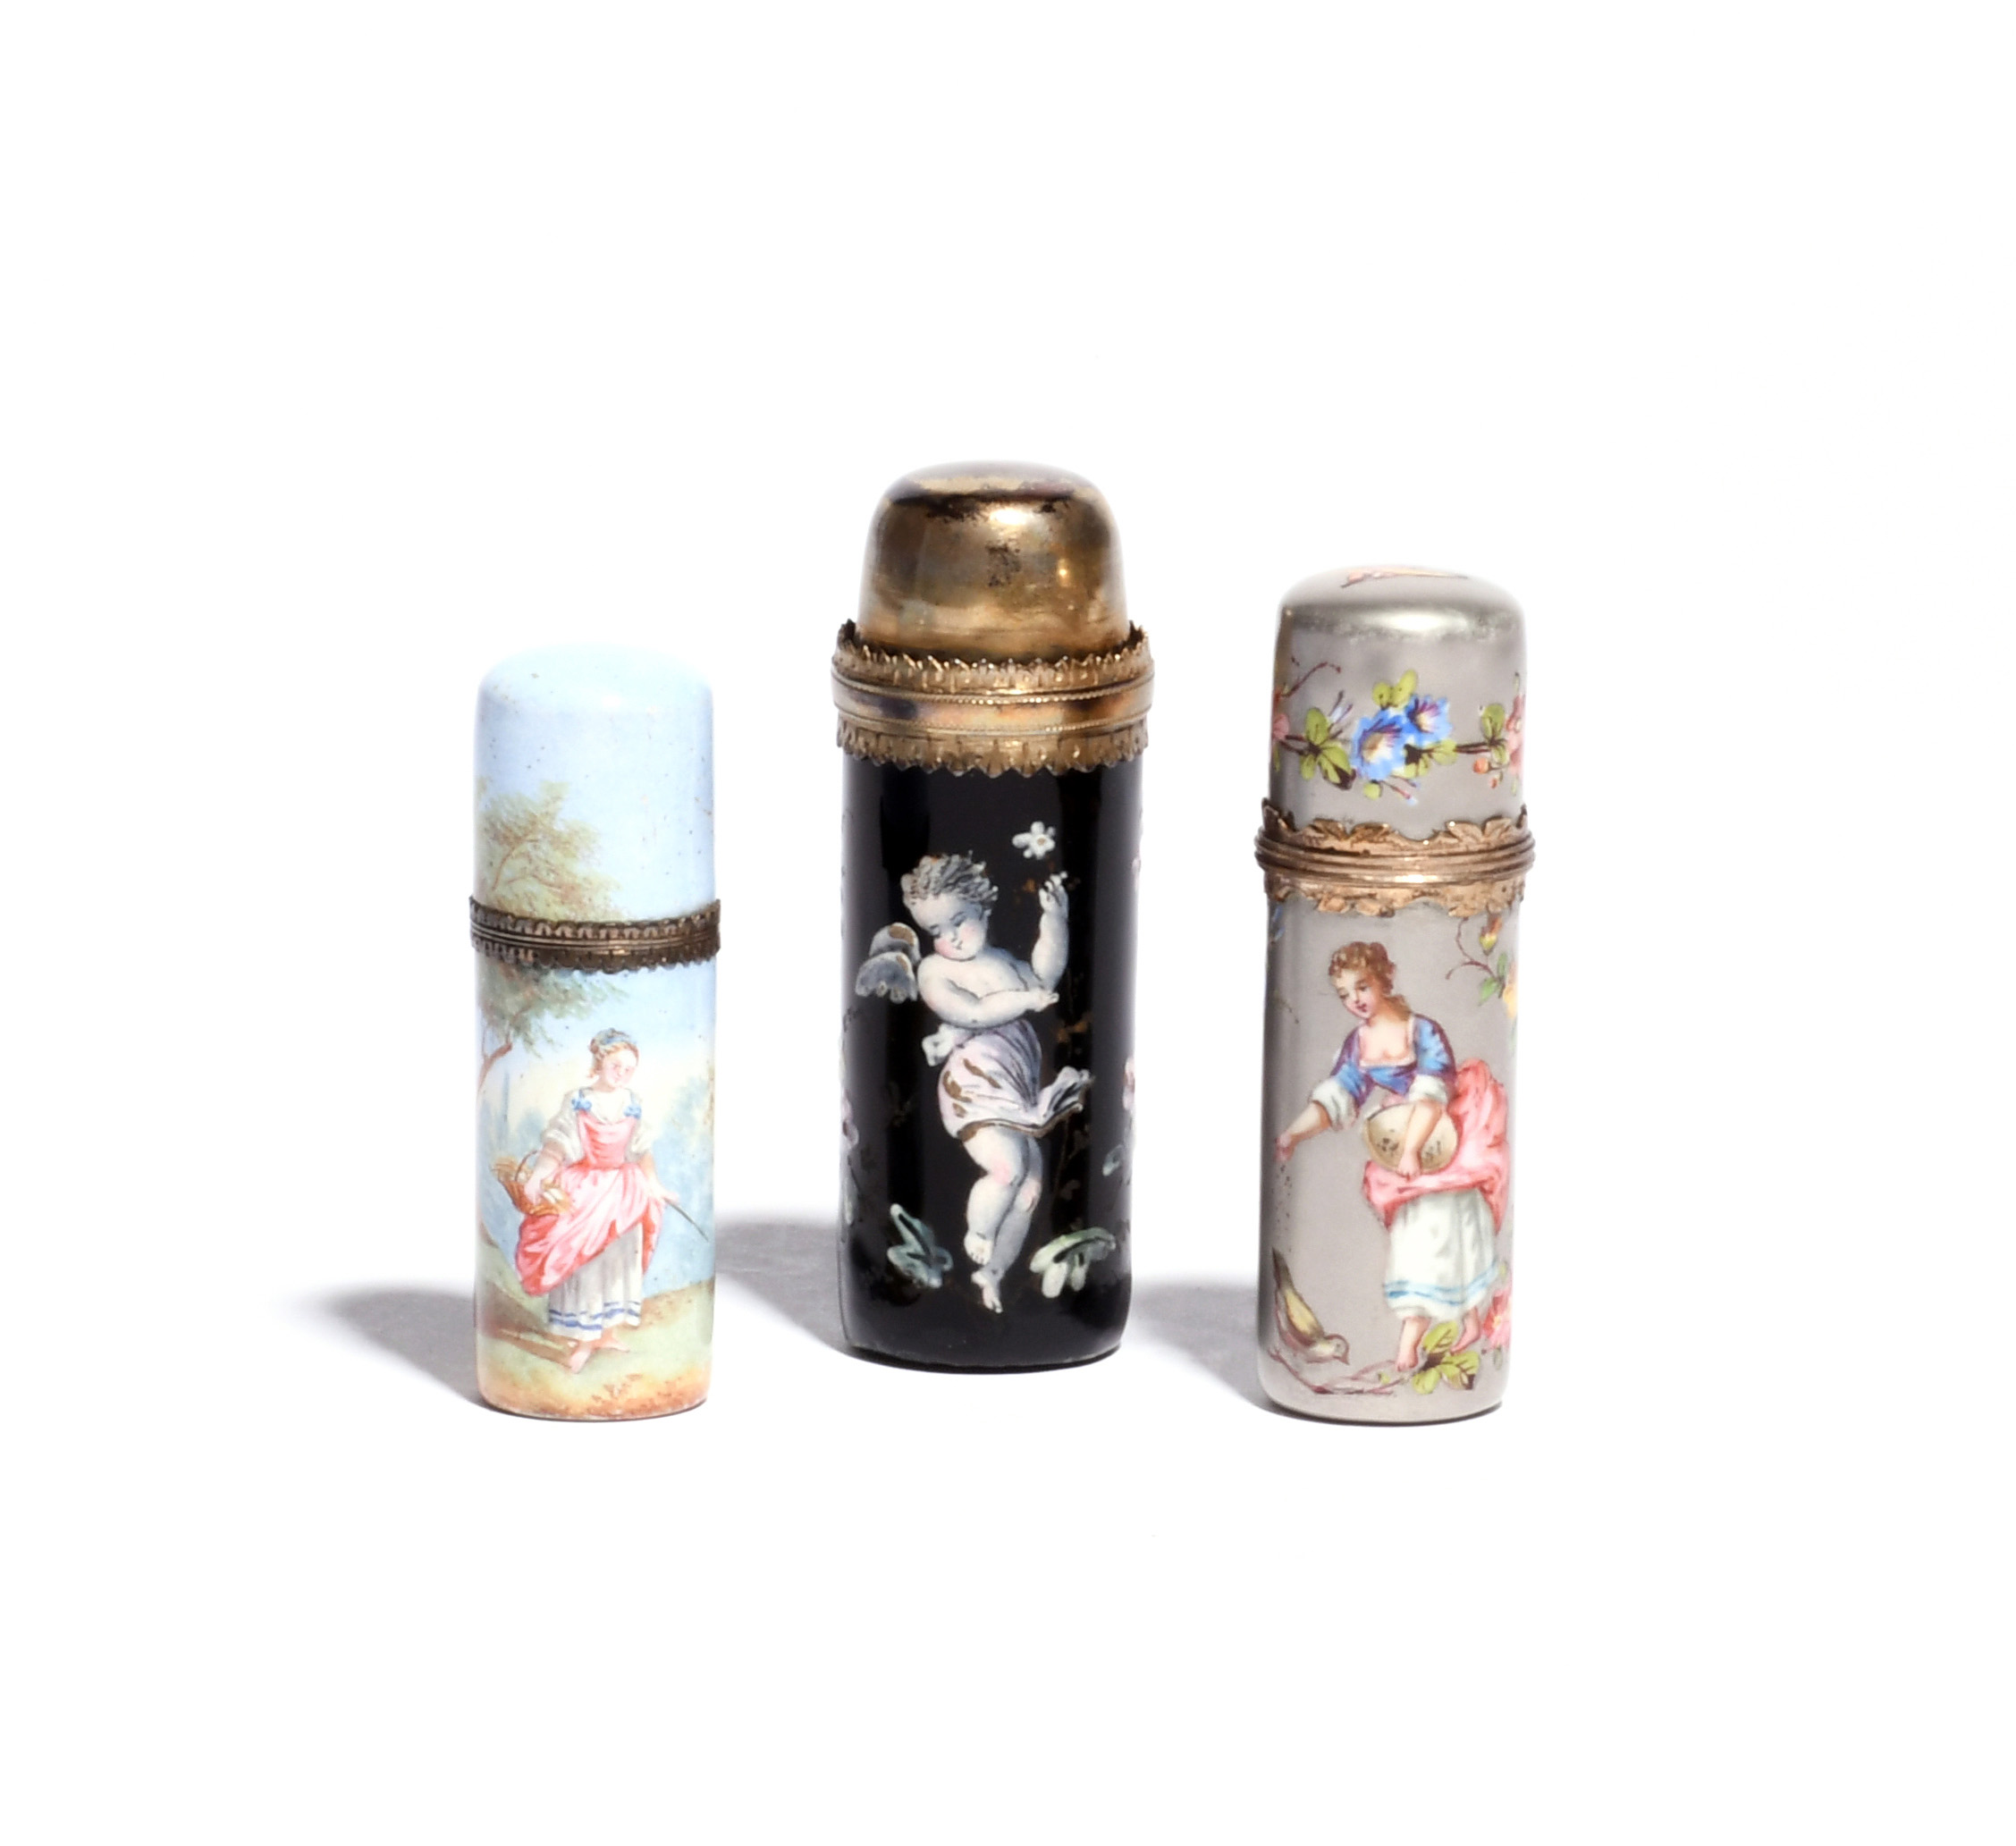 Three French enamel scent bottles 19th century, of cylindrical form, the largest painted with a